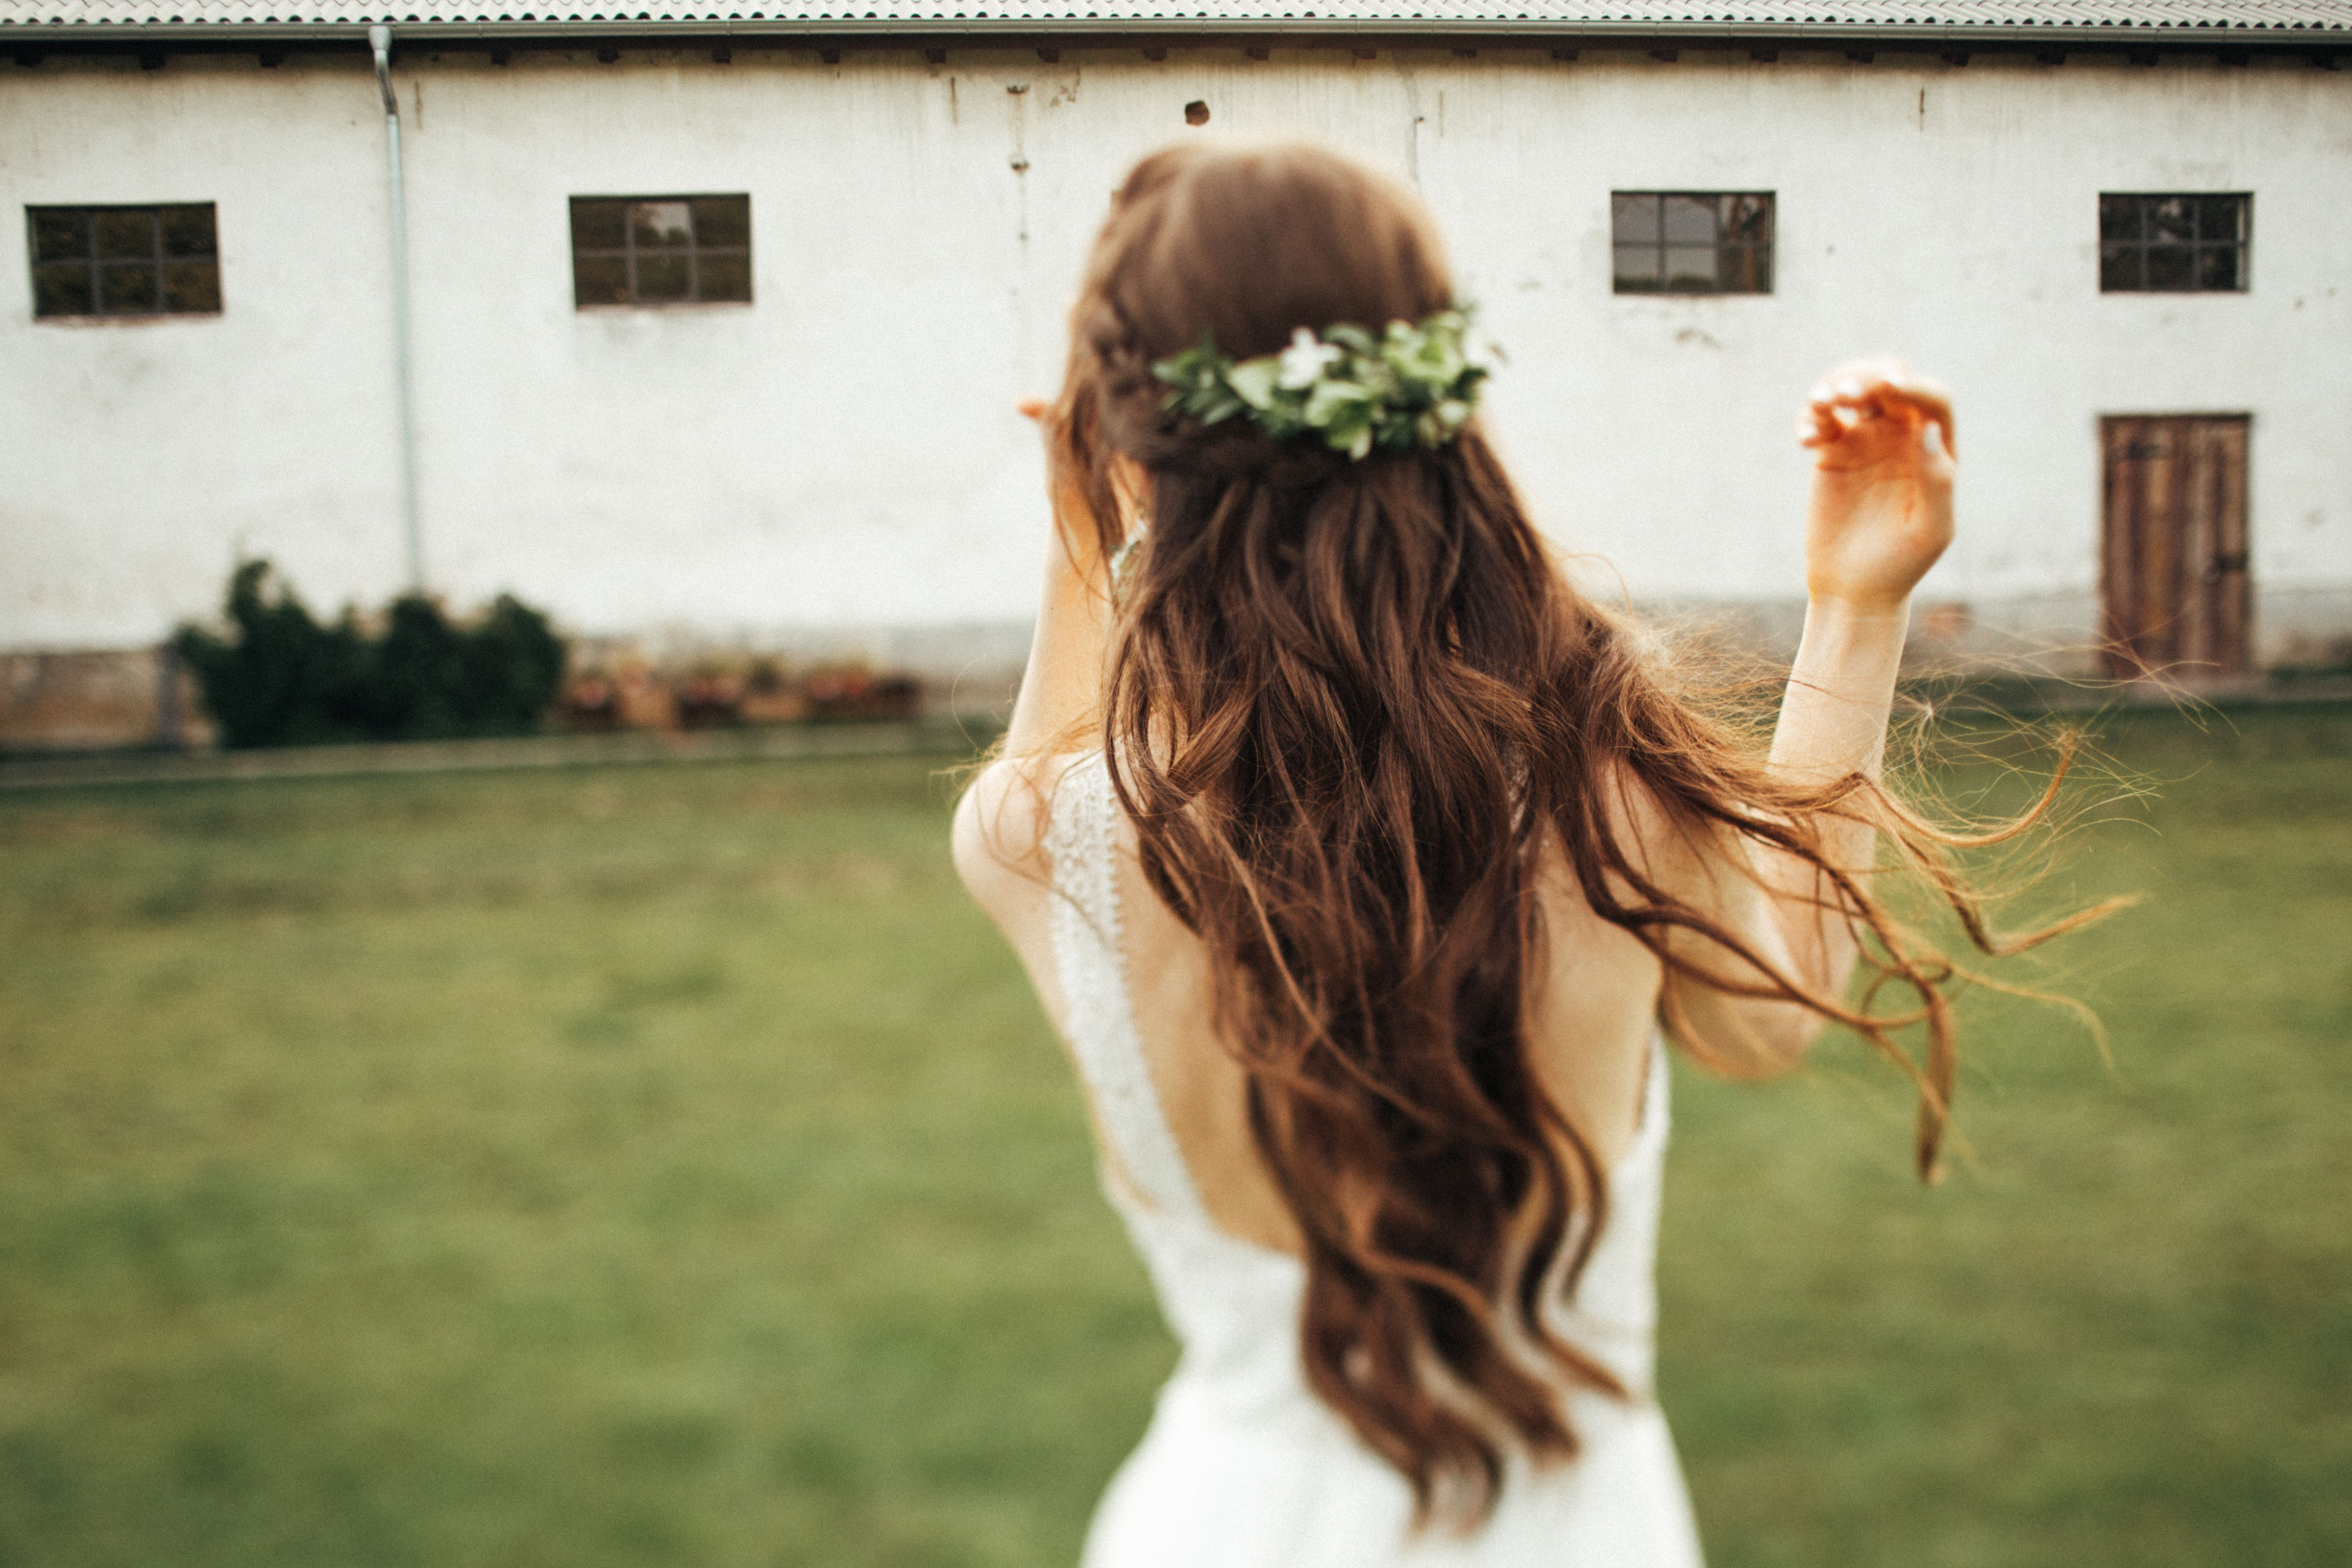 Inna Studio Flower Half Cup Flowers In The Hair Green Decoration Comb With Flowers Green In The Hair For The Wedd Long Hair Styles Flowers In Hair Hair Styles